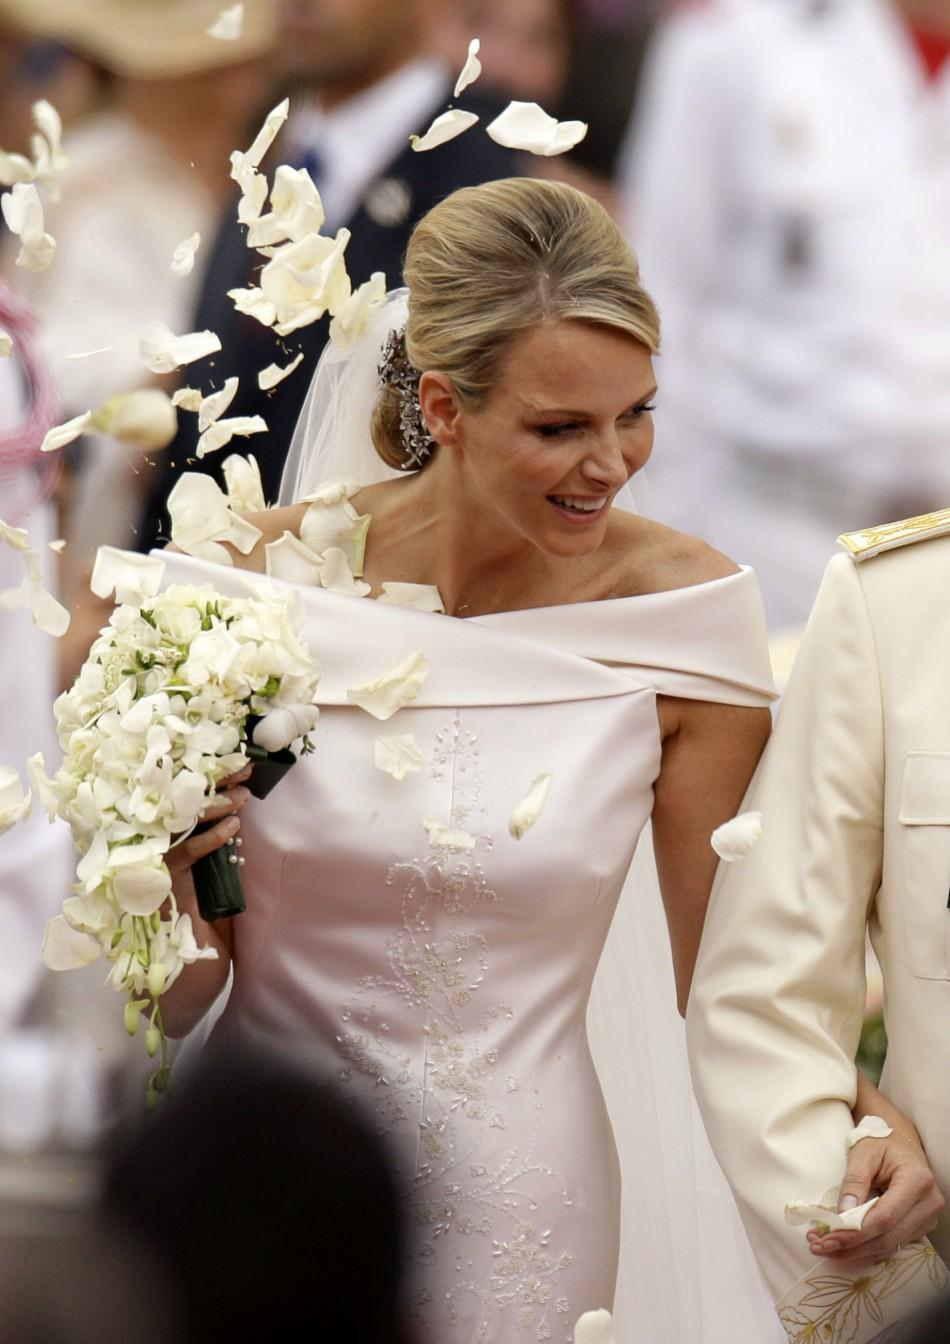 Princess Charlene of Monaco smiles as she departs from the Monaco palace after their religious wedding ceremony in Monaco